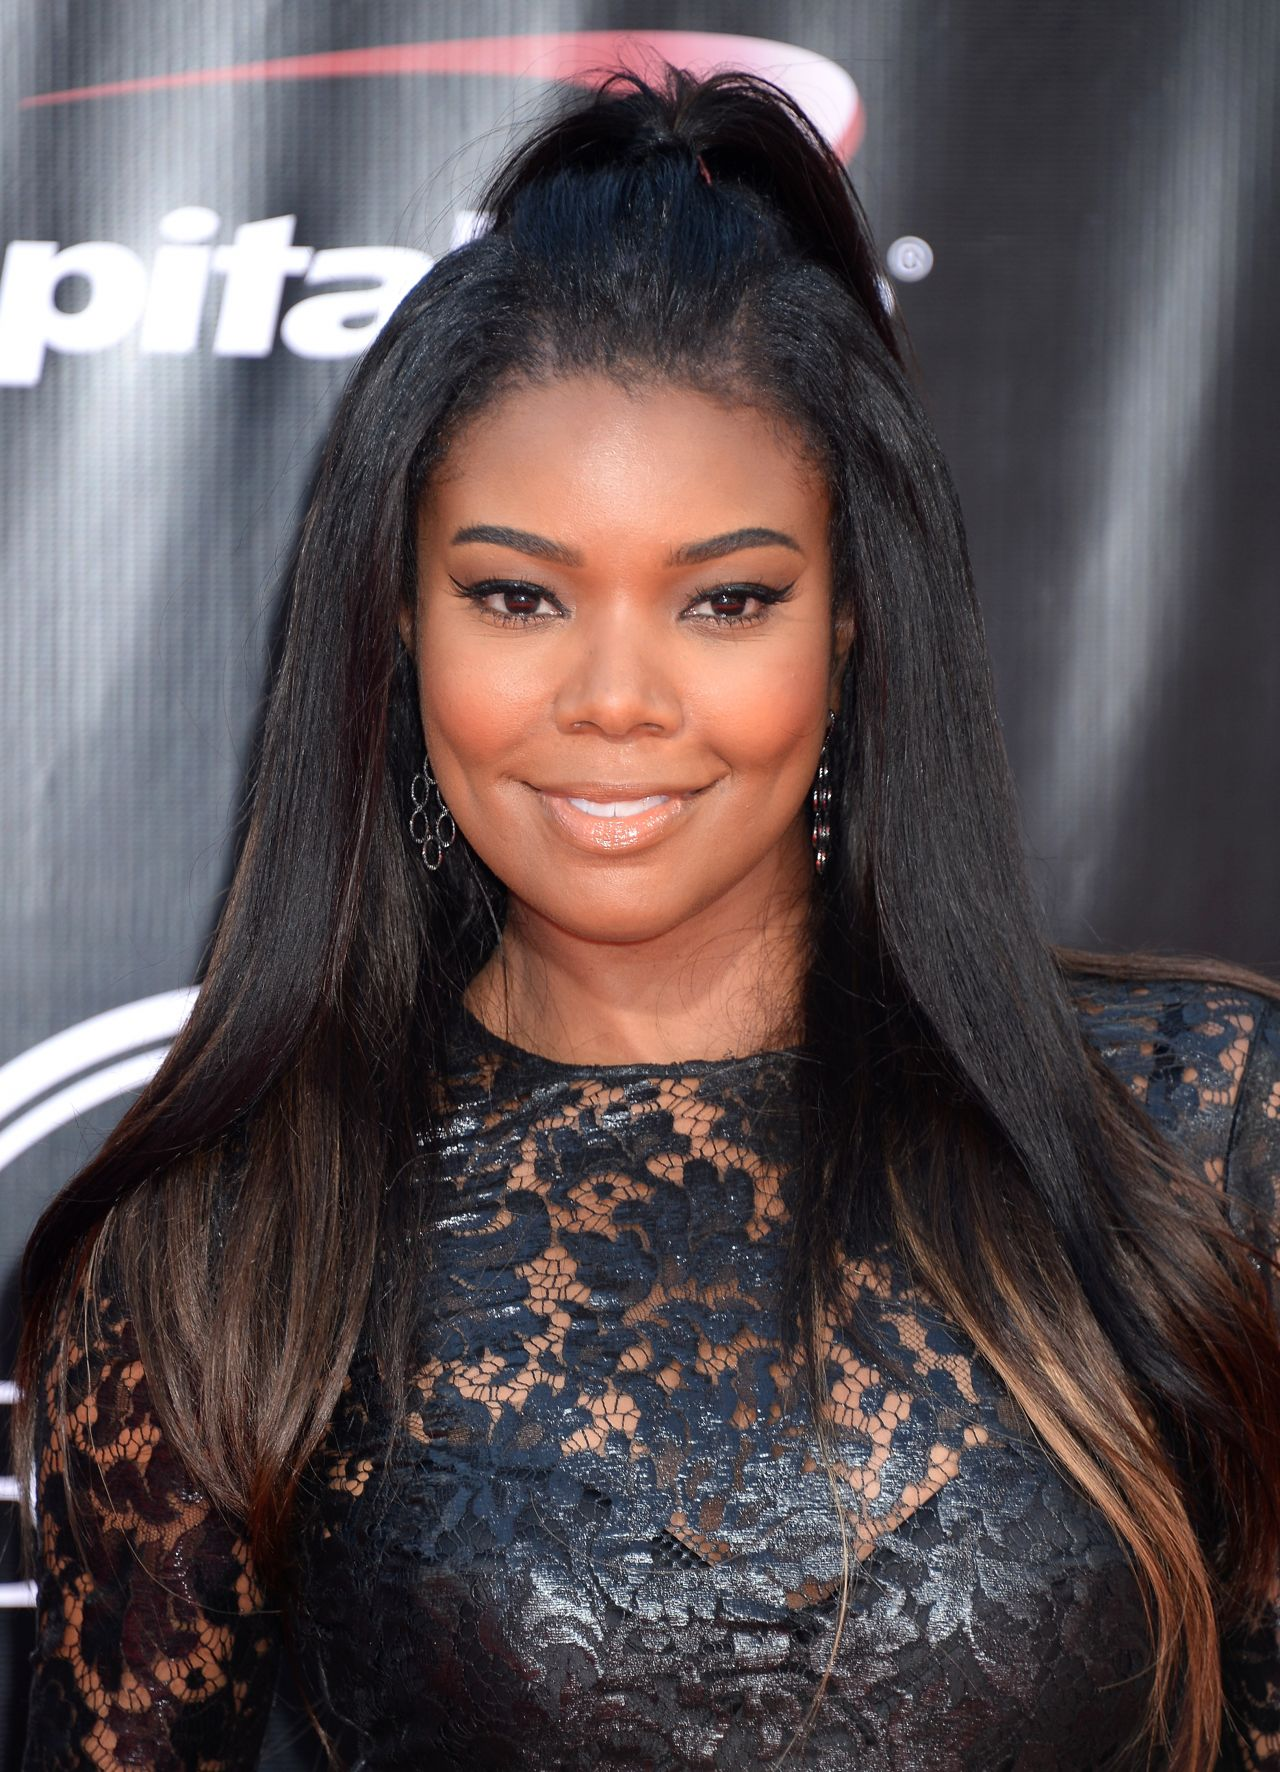 Gabrielle Union Espy Awards 2016 In Los Angeles